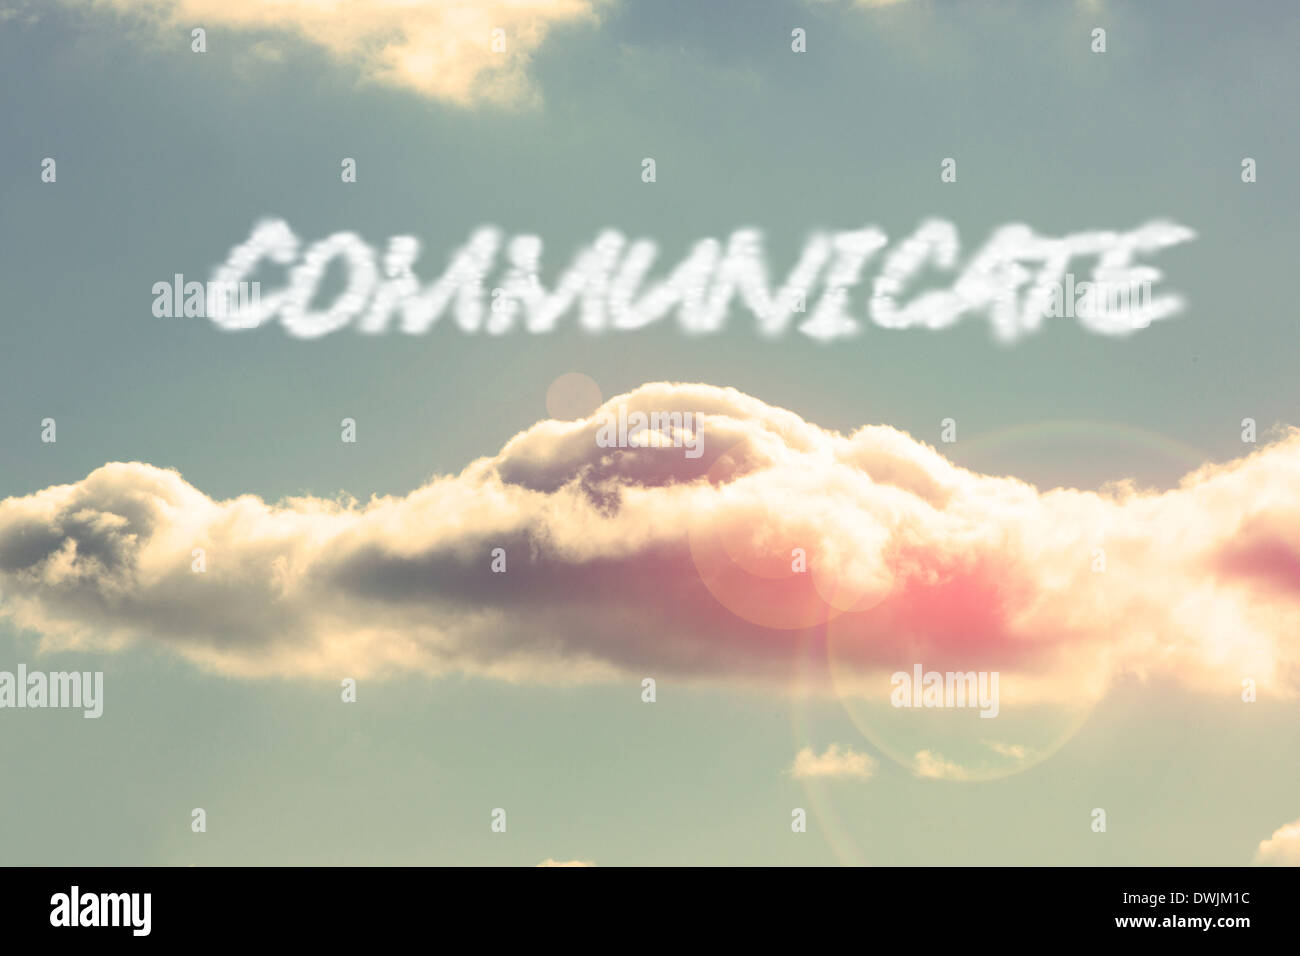 Communicate against bright blue sky with cloud - Stock Image